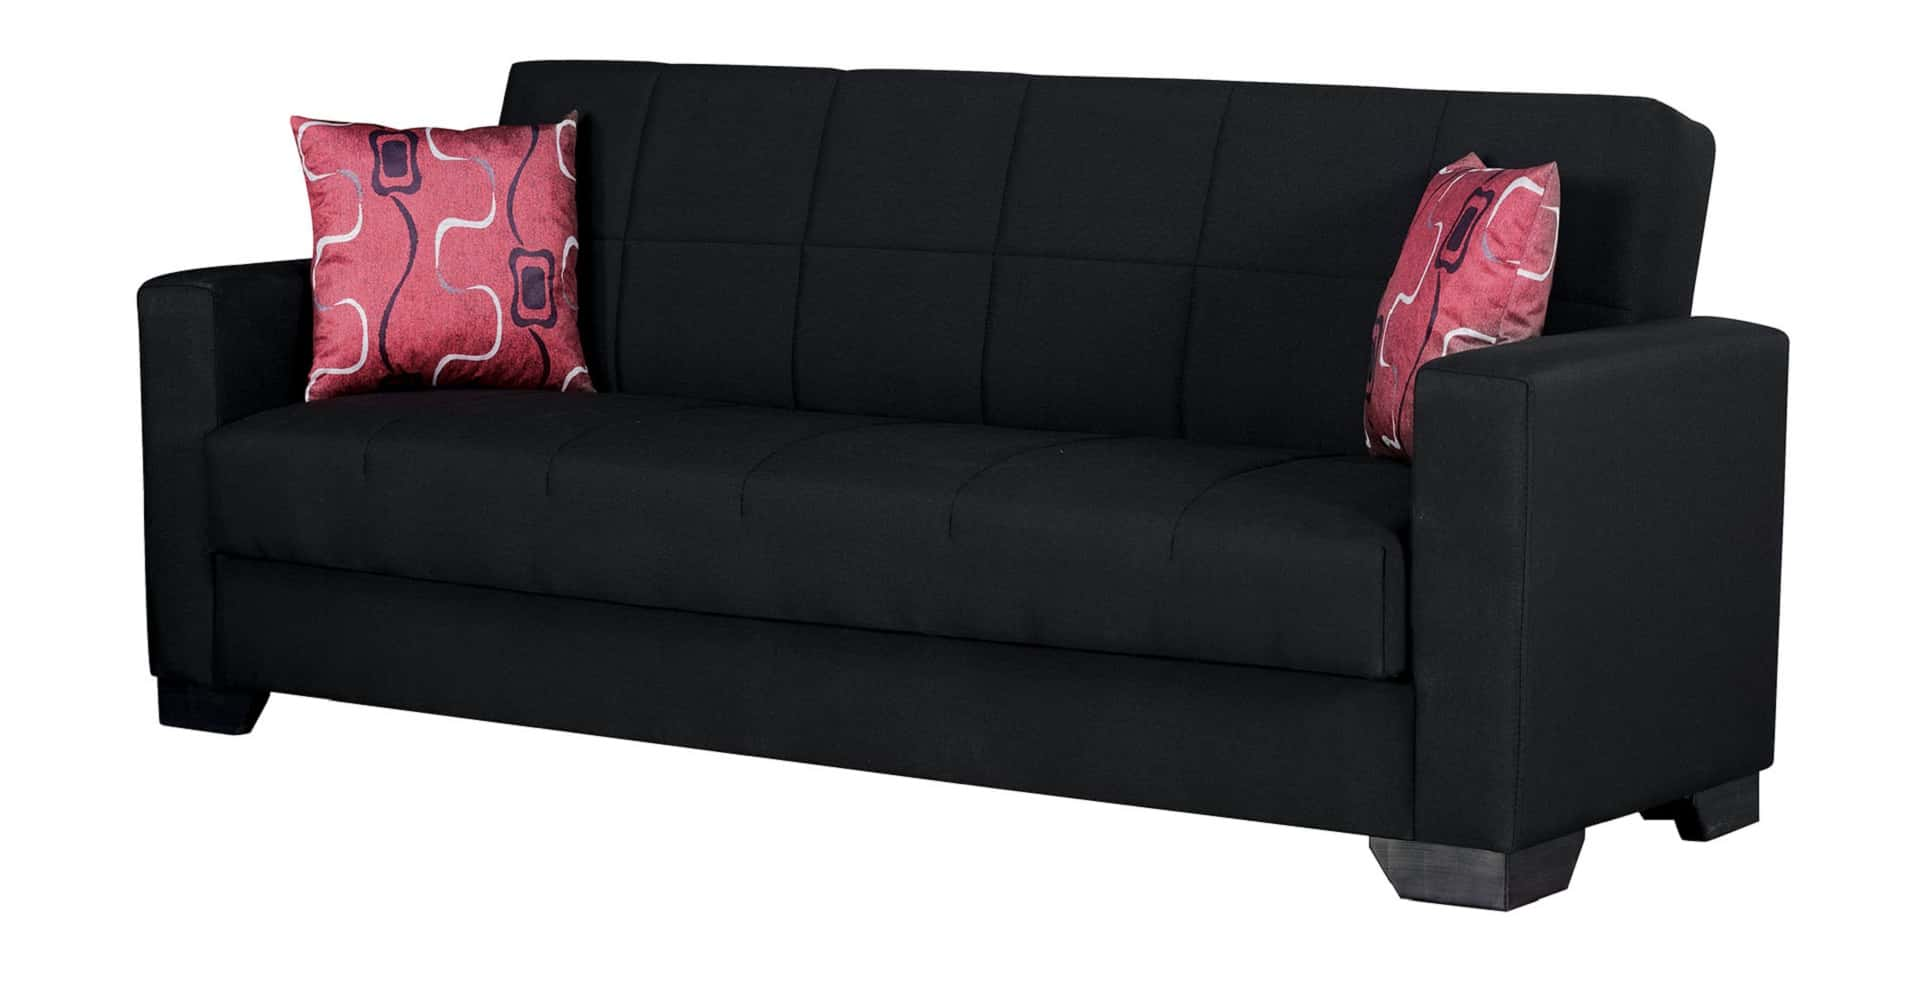 Vermont Black Fabric Sofa Bed By Empire Furniture Usa